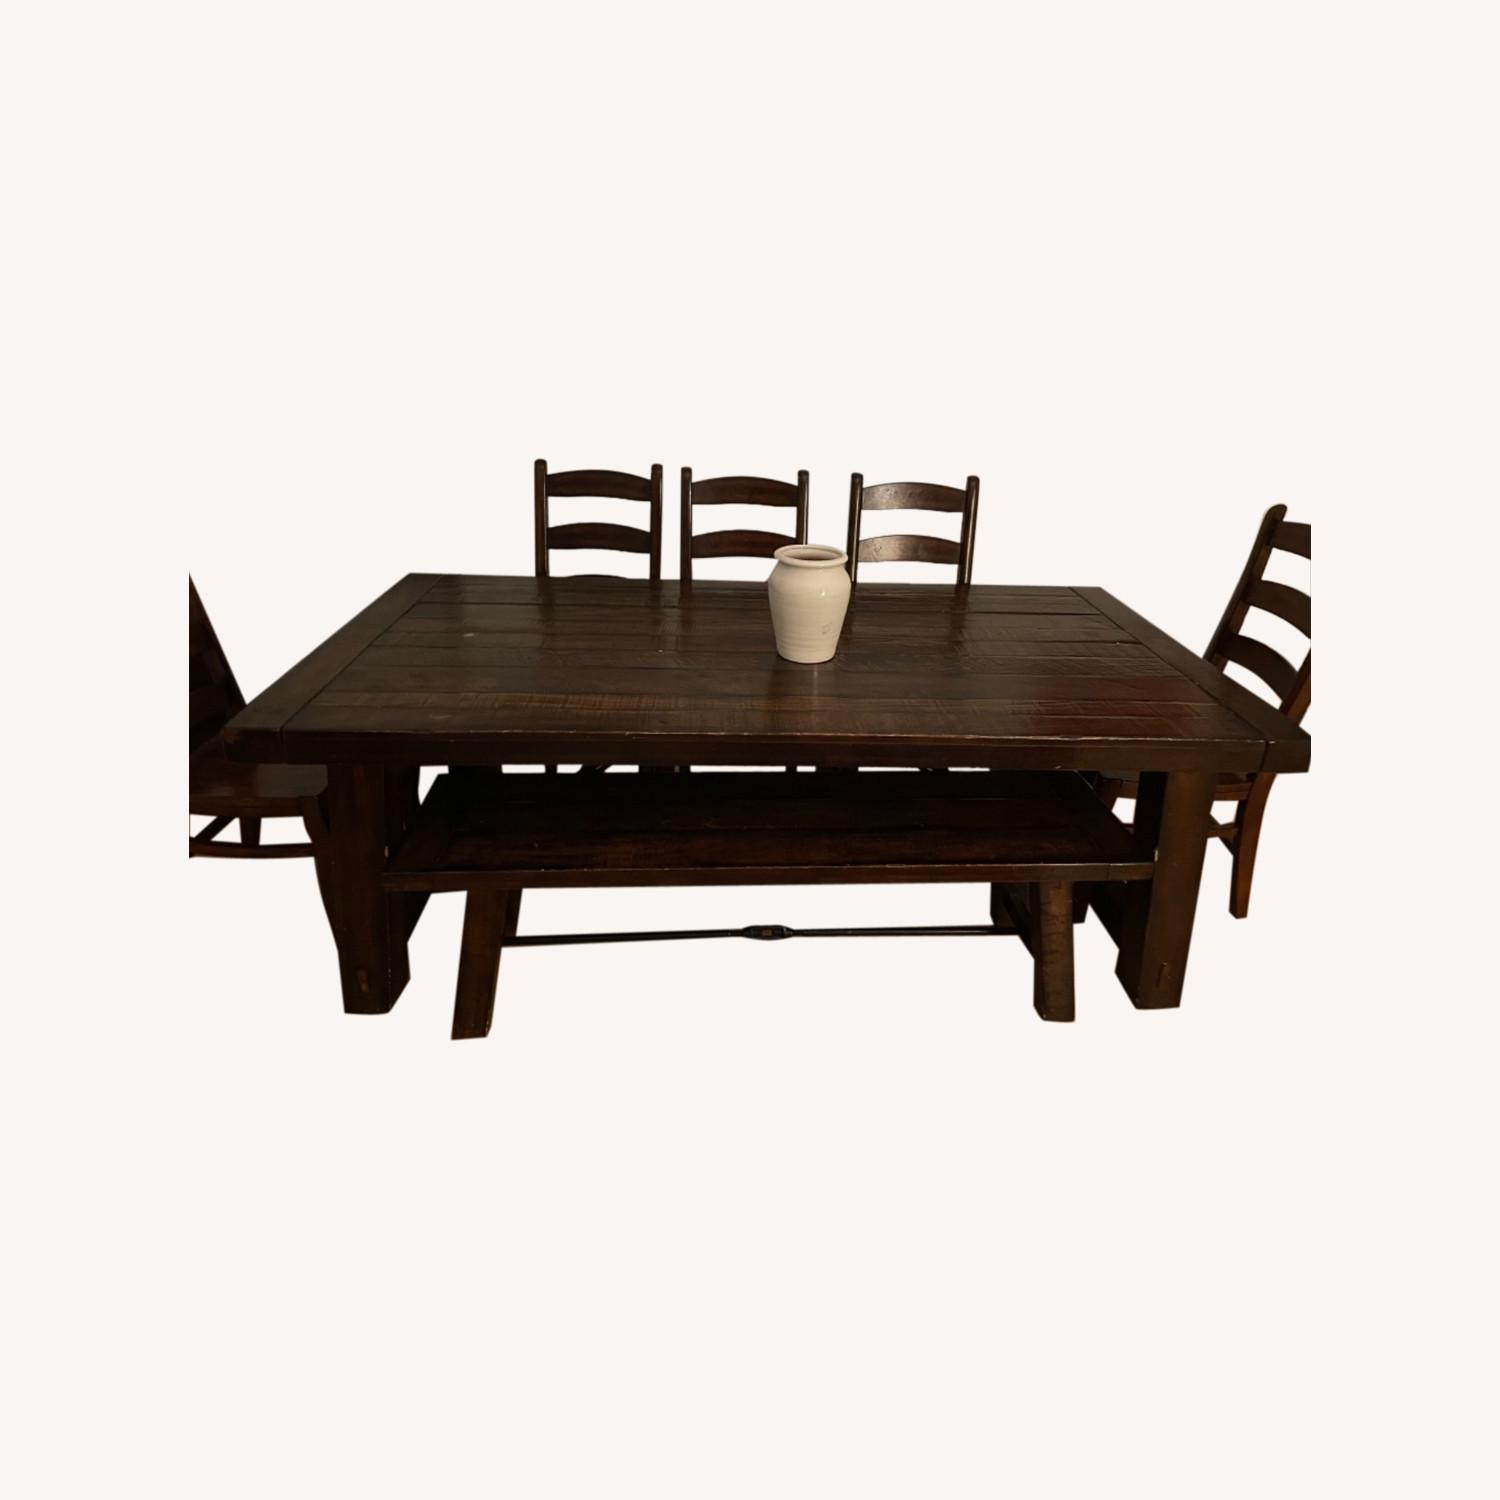 Pottery Barn Benchwright Extension Table Set - image-0